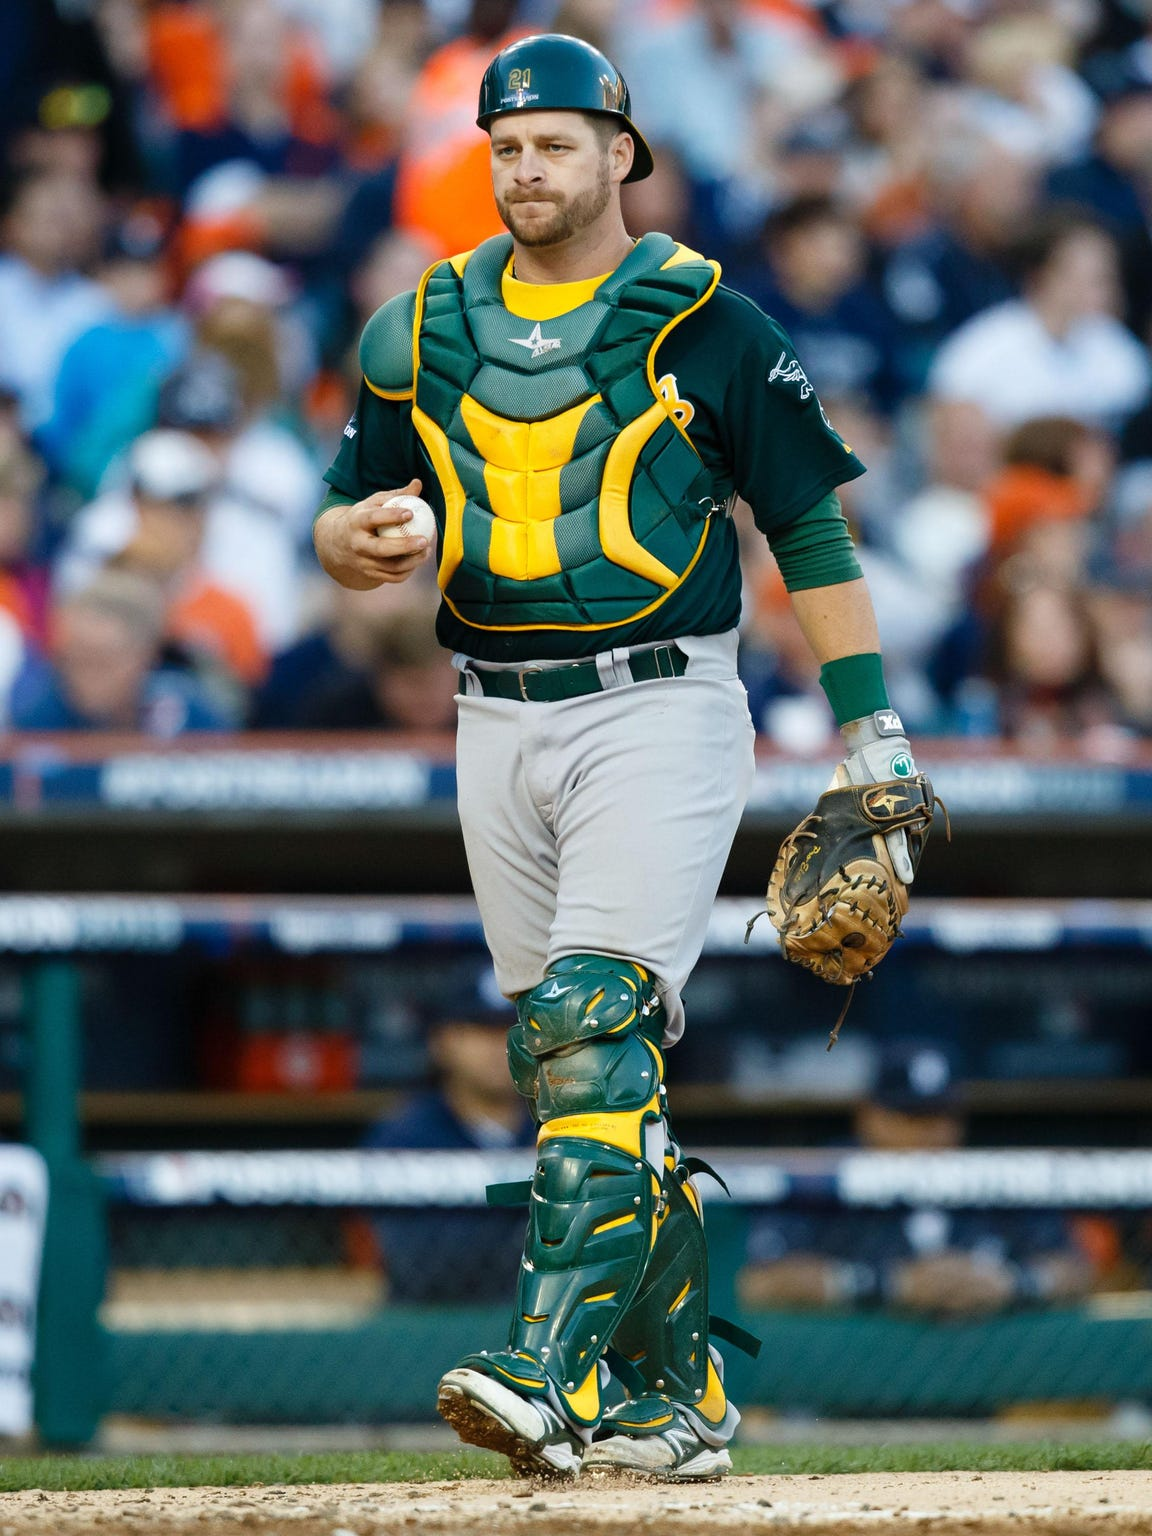 Oakland Athletics catcher Stephen Vogt is a Central